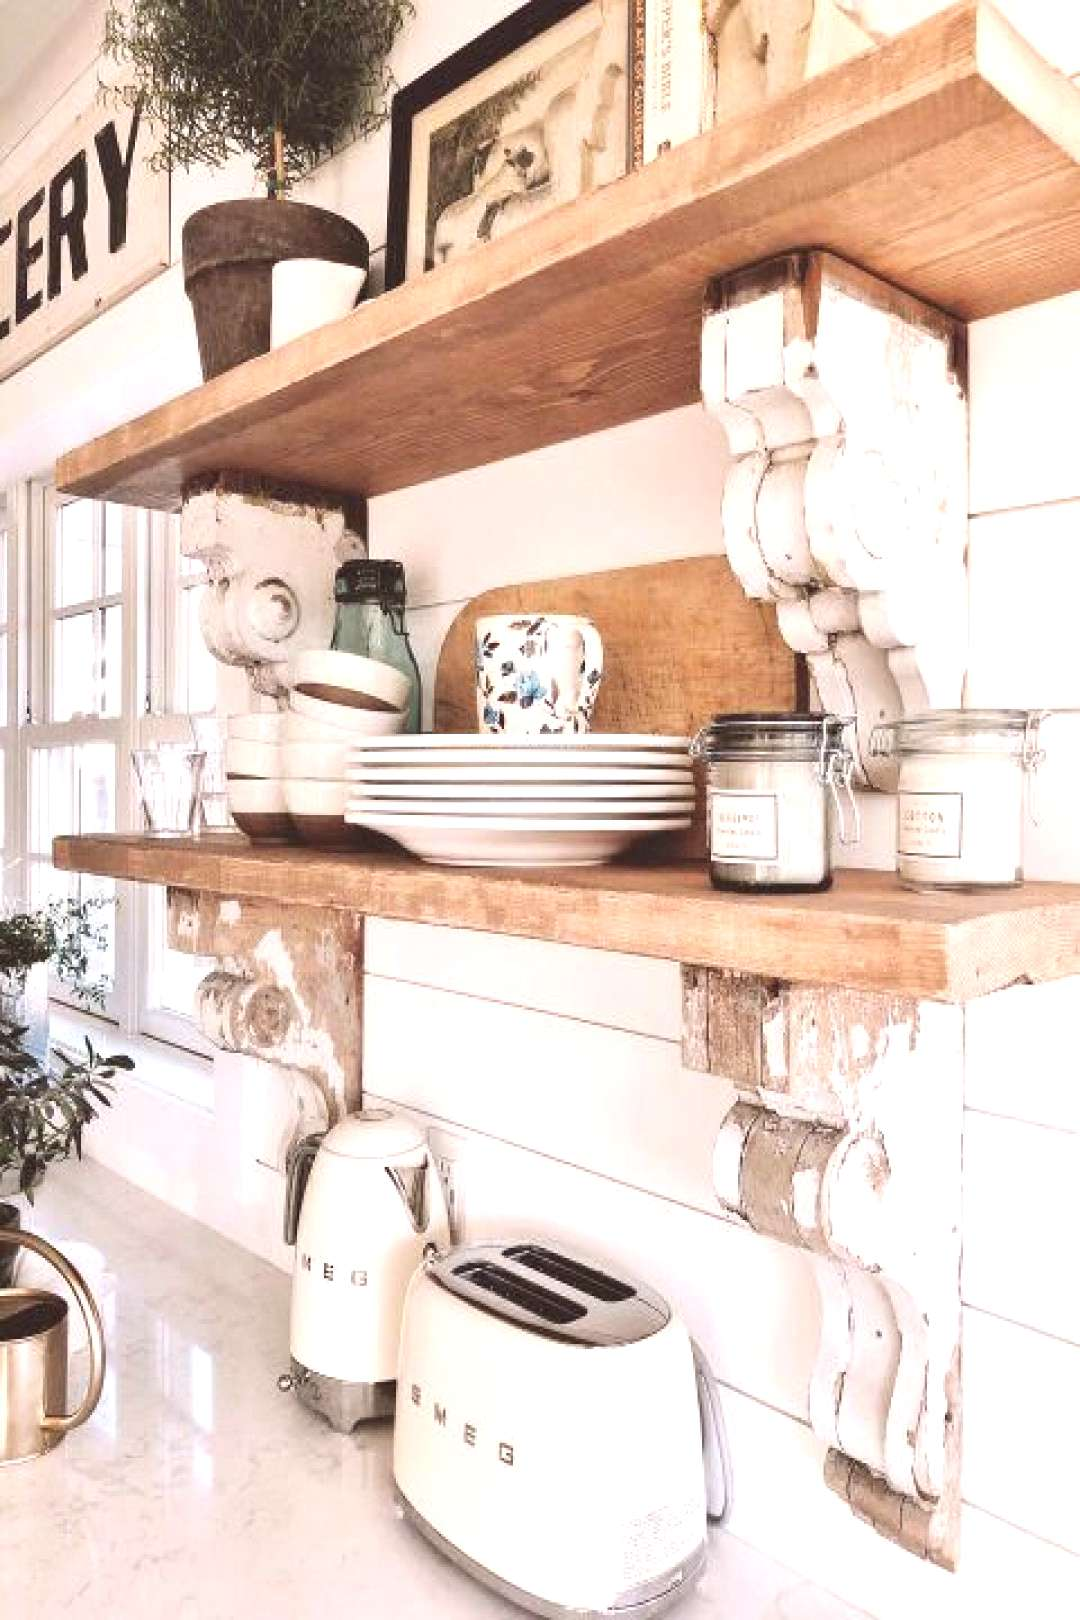 OK Dying Over This Kitchen